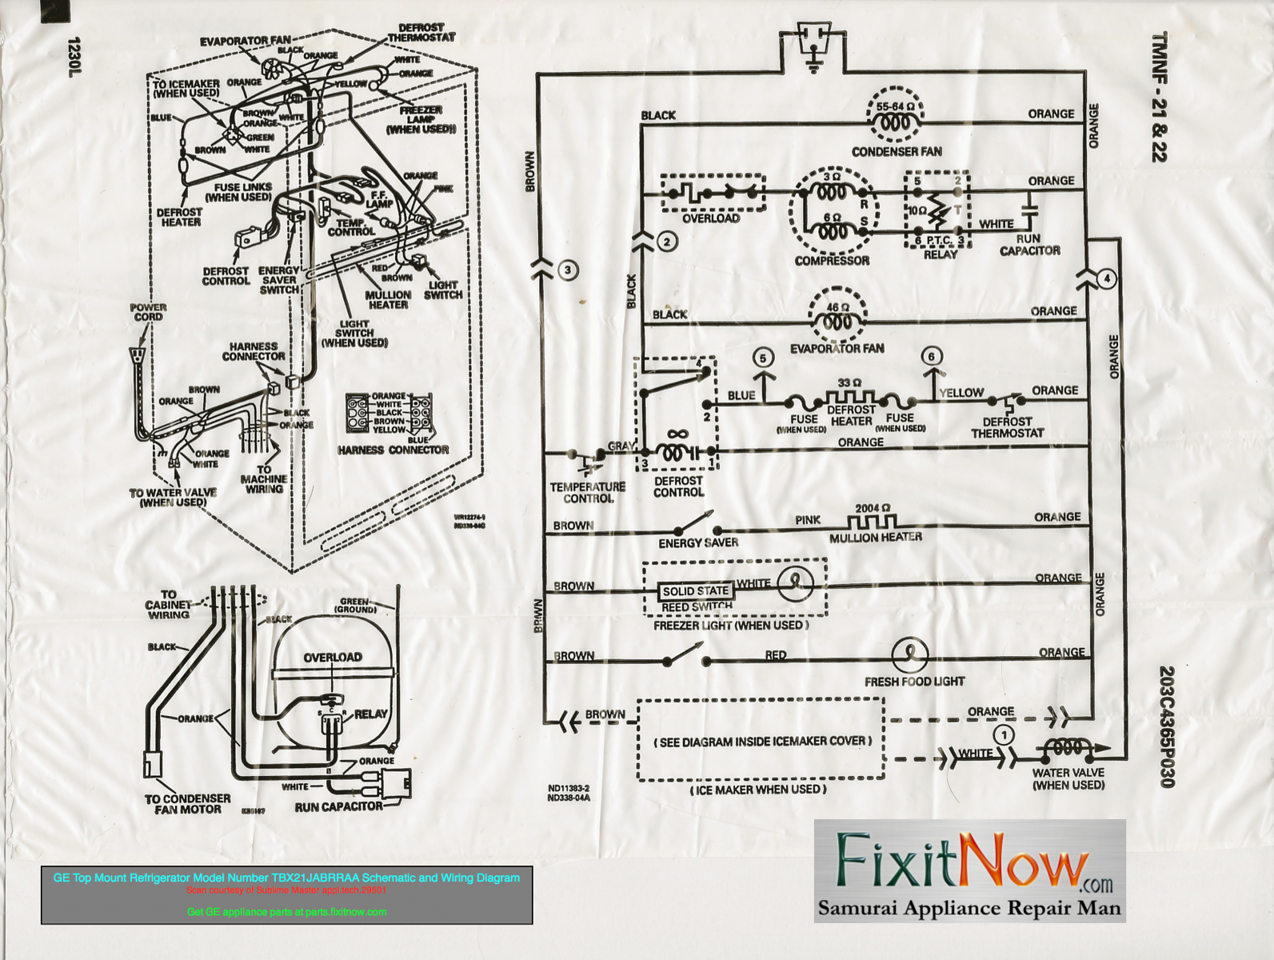 4904374061_e8eb3df6c6_o X2 ge ice maker wiring diagram ice maker schematic \u2022 wiring diagrams  at n-0.co